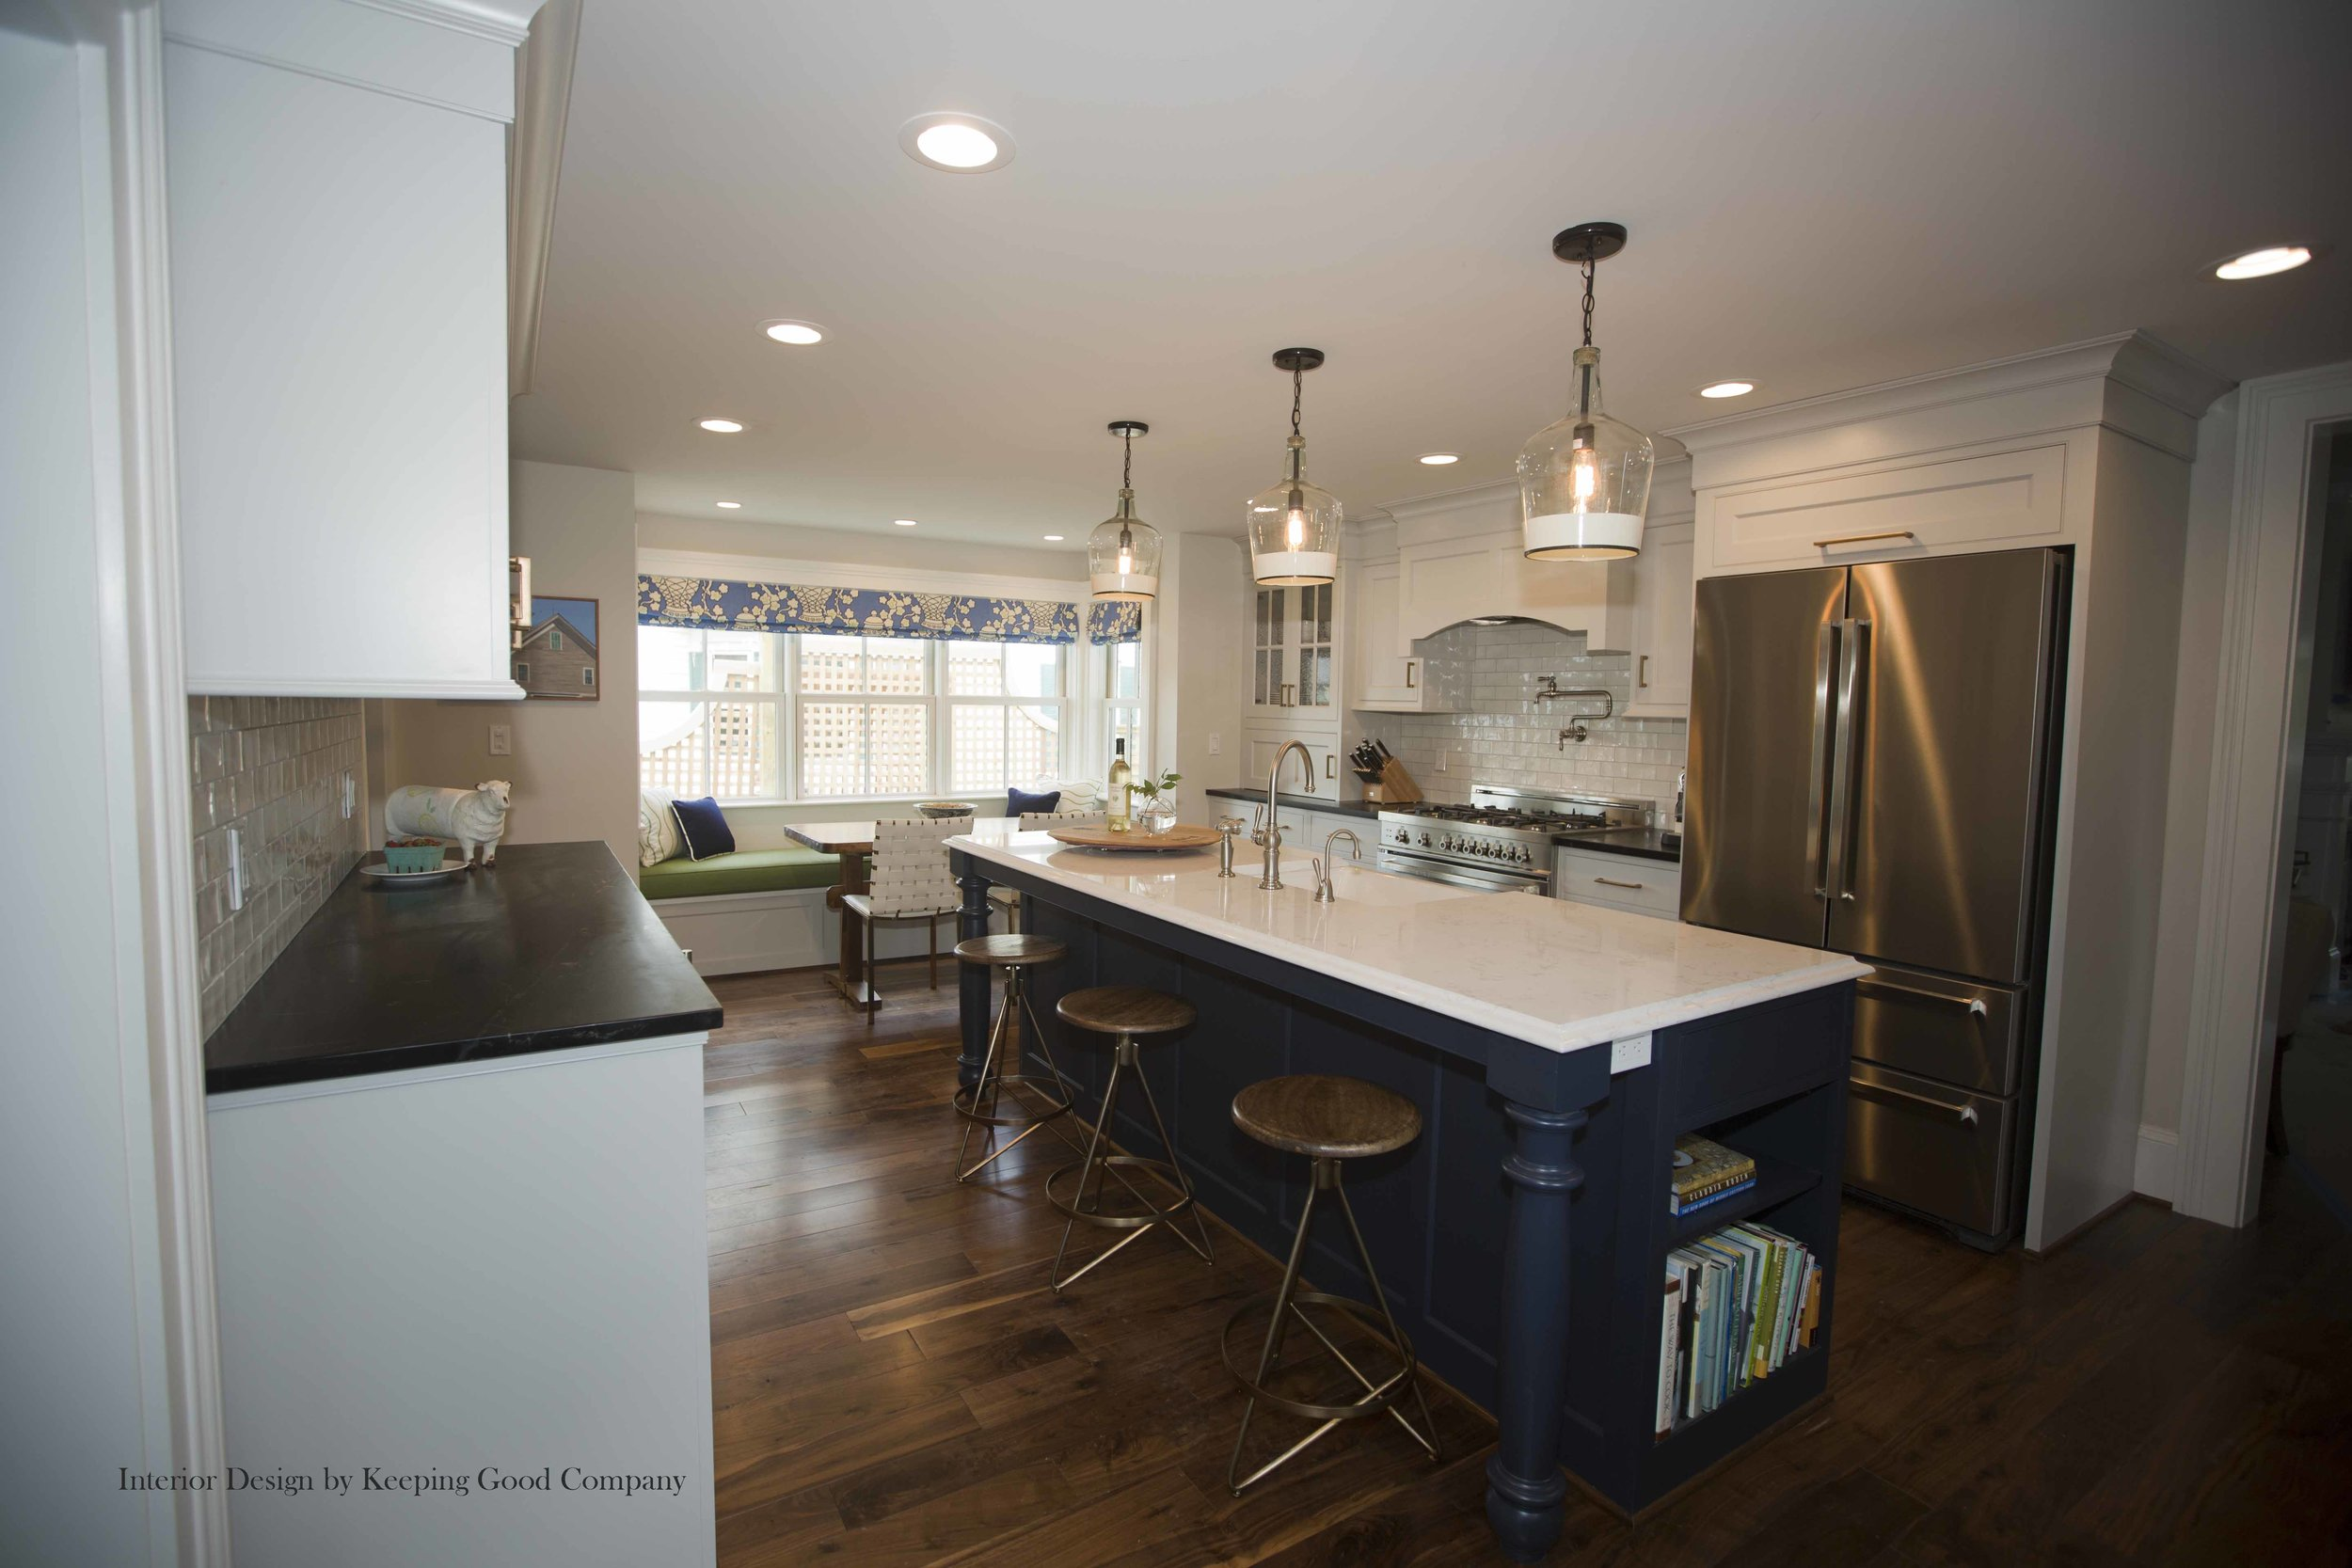 Built-in Refrigeration,Built-in Bench Seating with Paneled Front, Moody Blue Island Painted Cabinetry